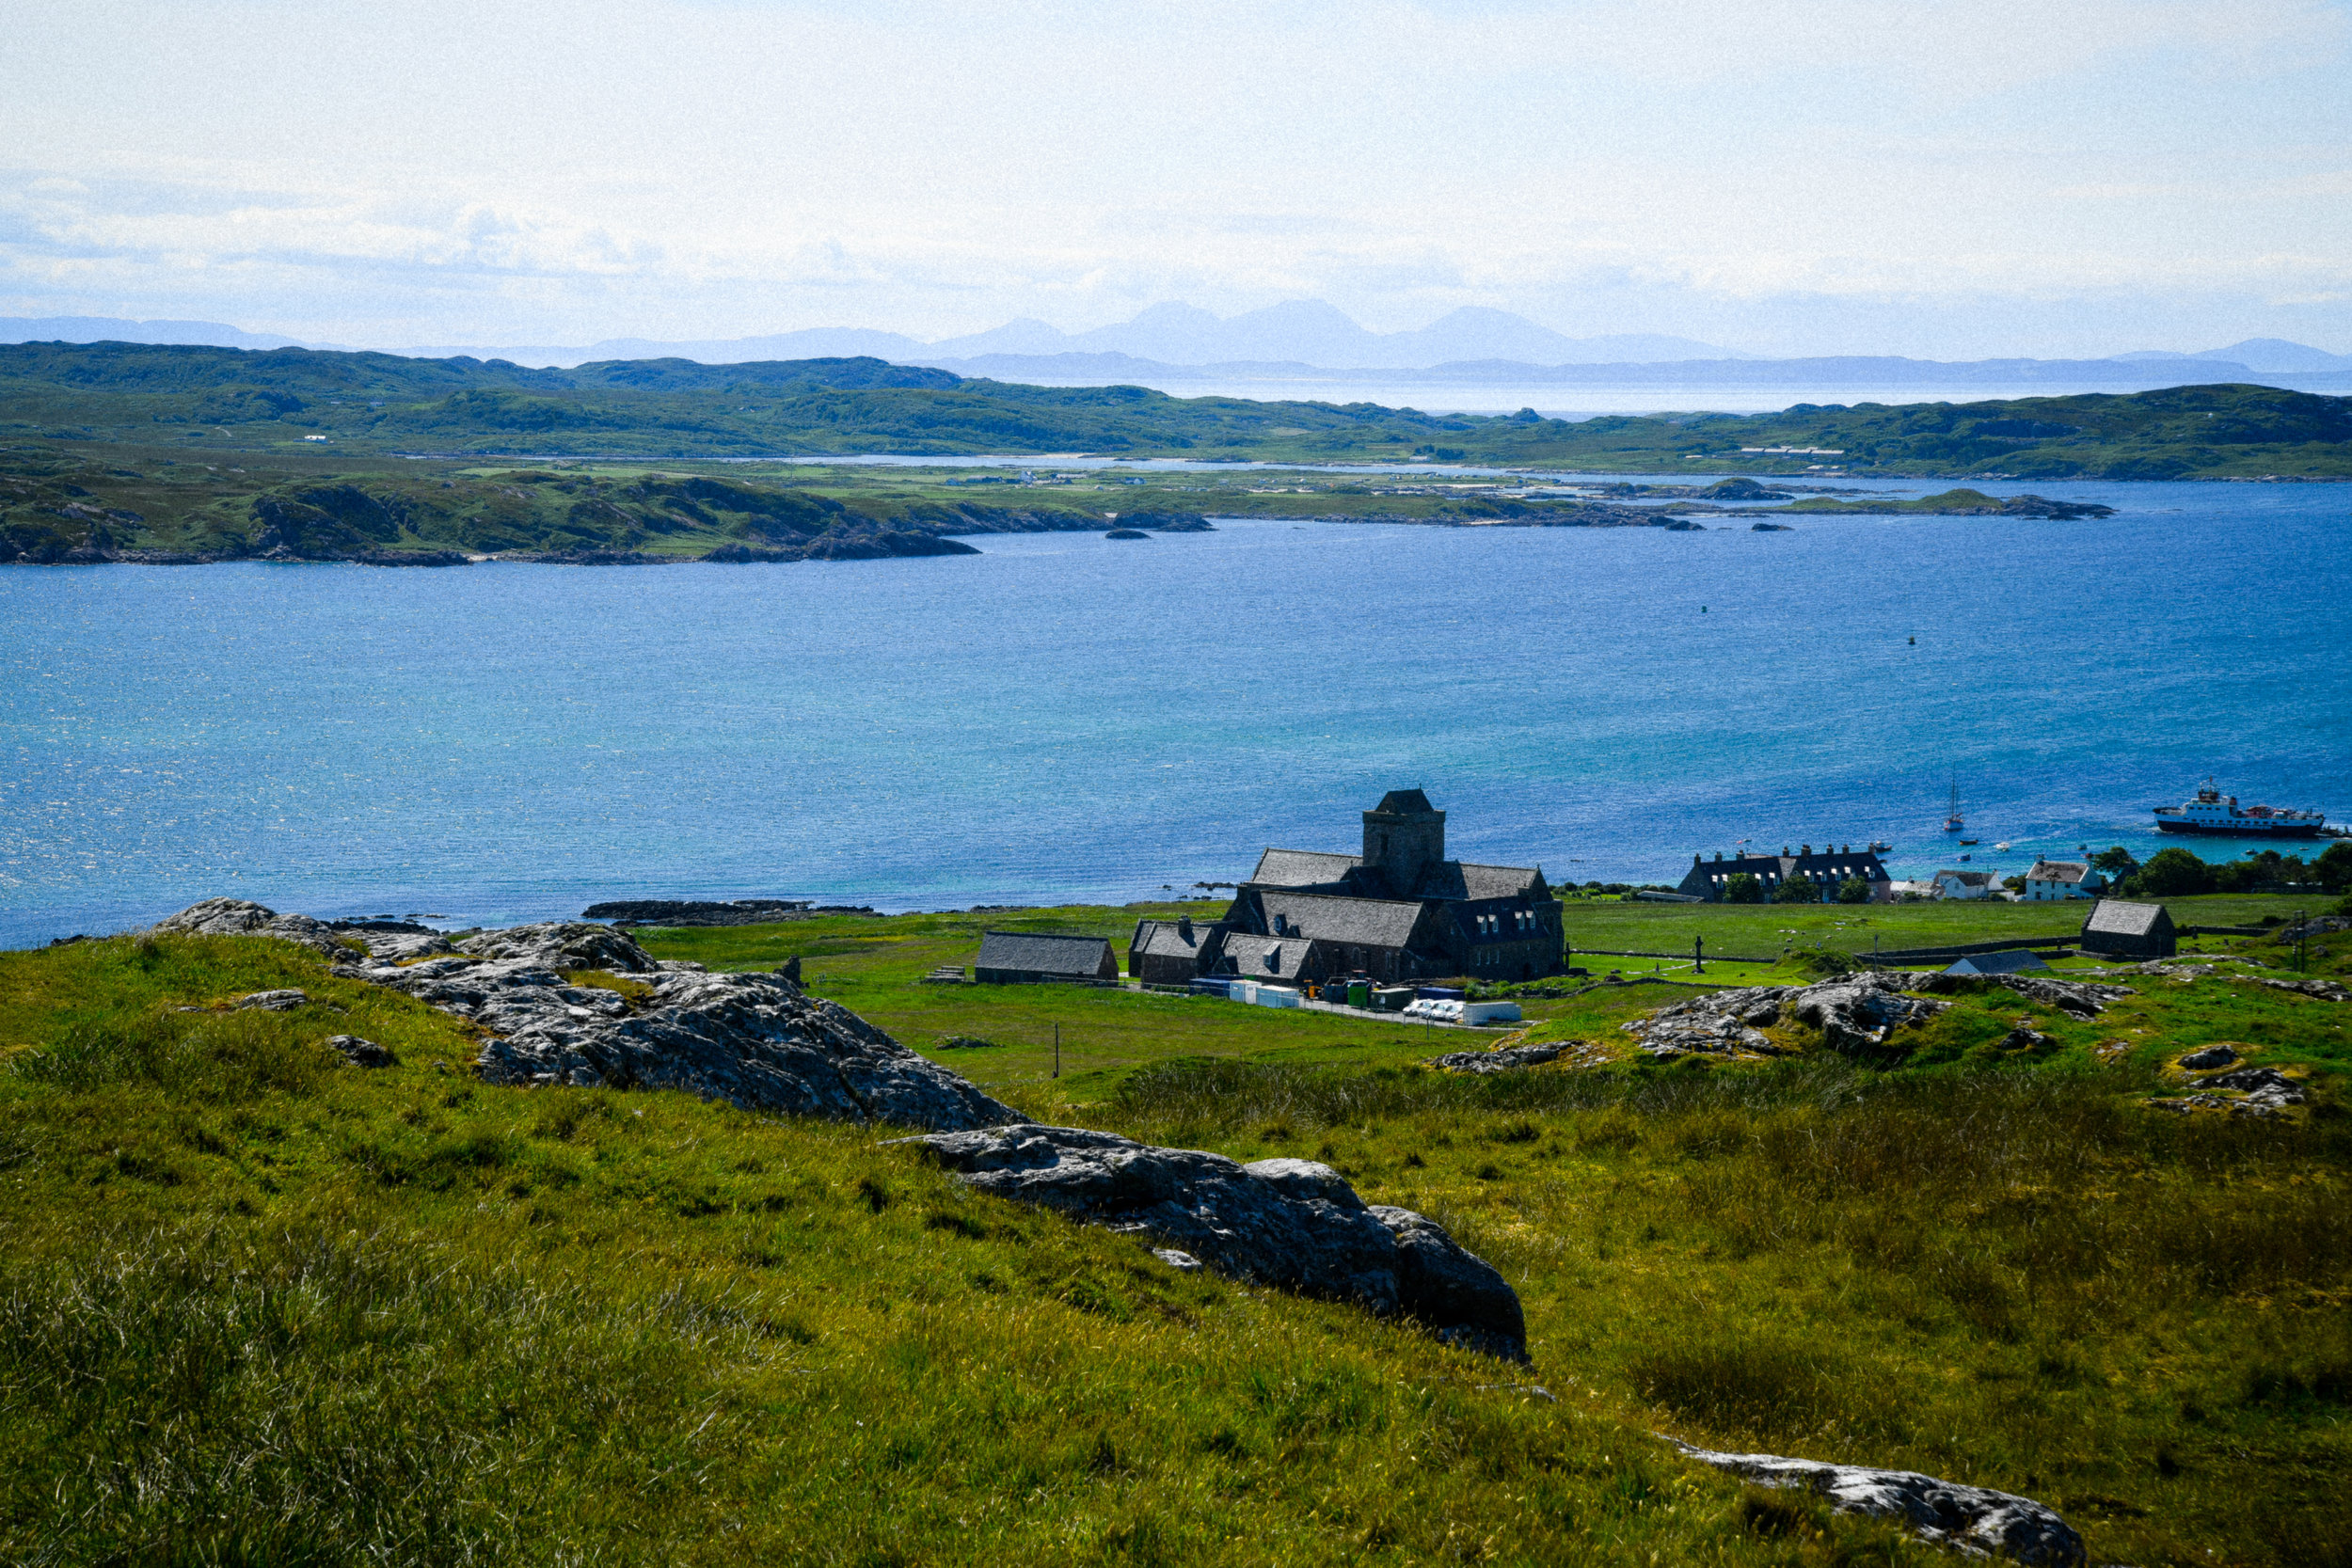 iona from the top of the highest point